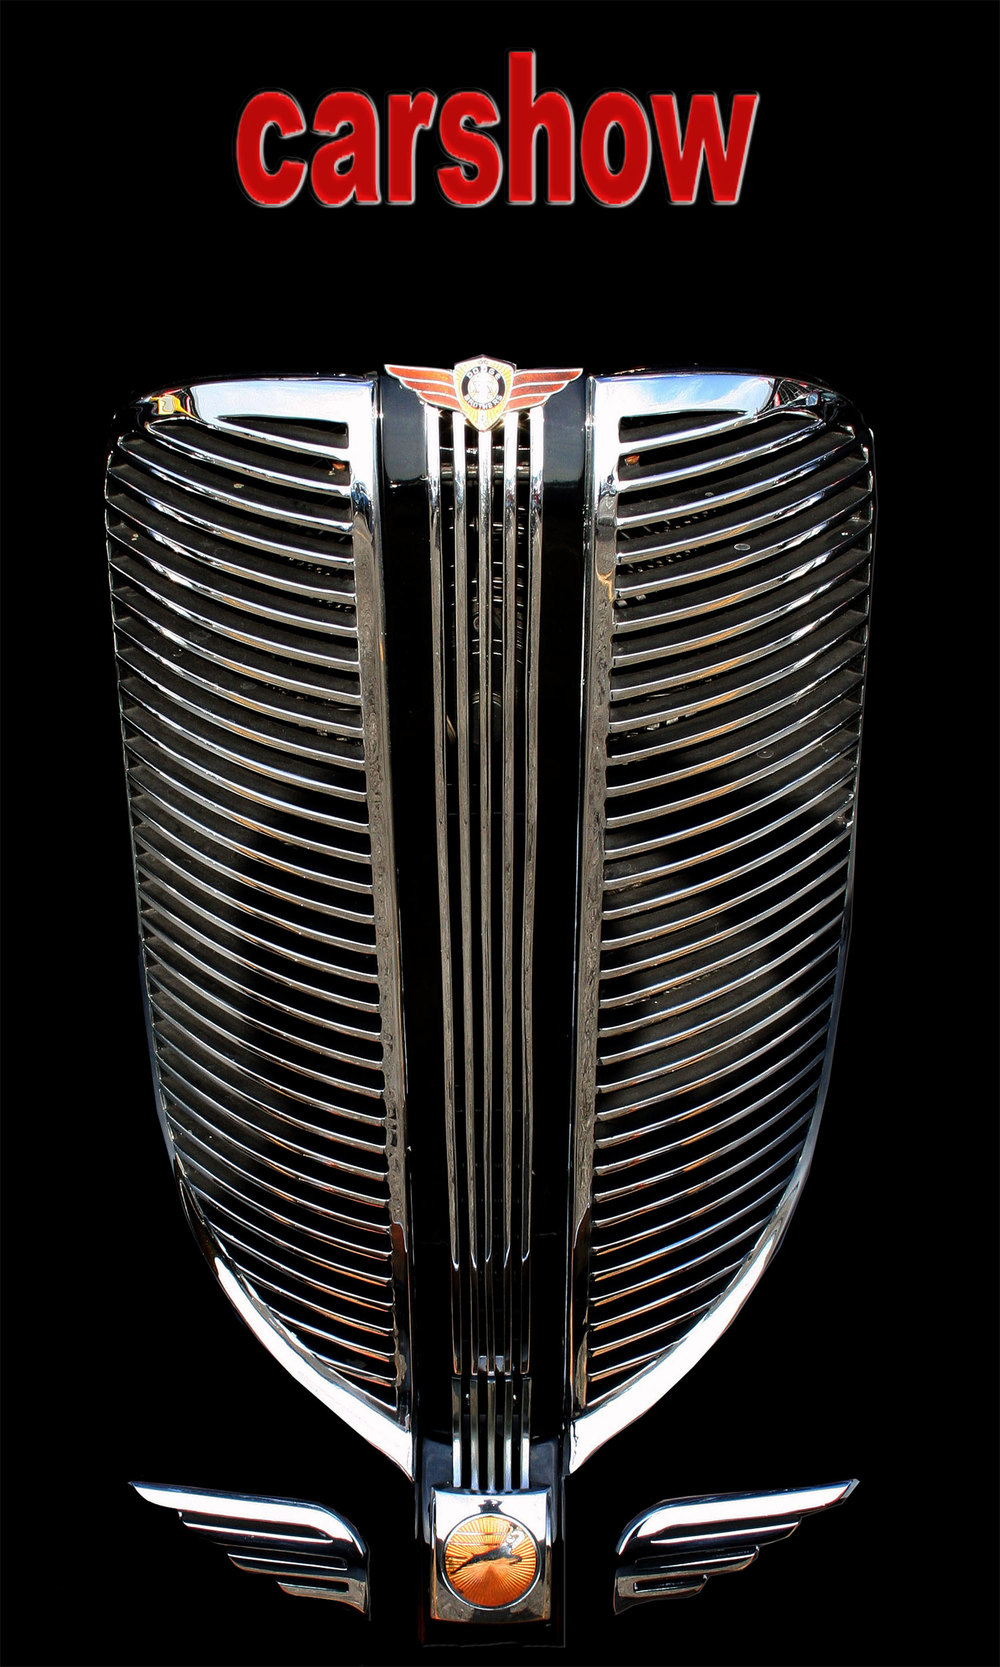 Carshow Grille car-tografi